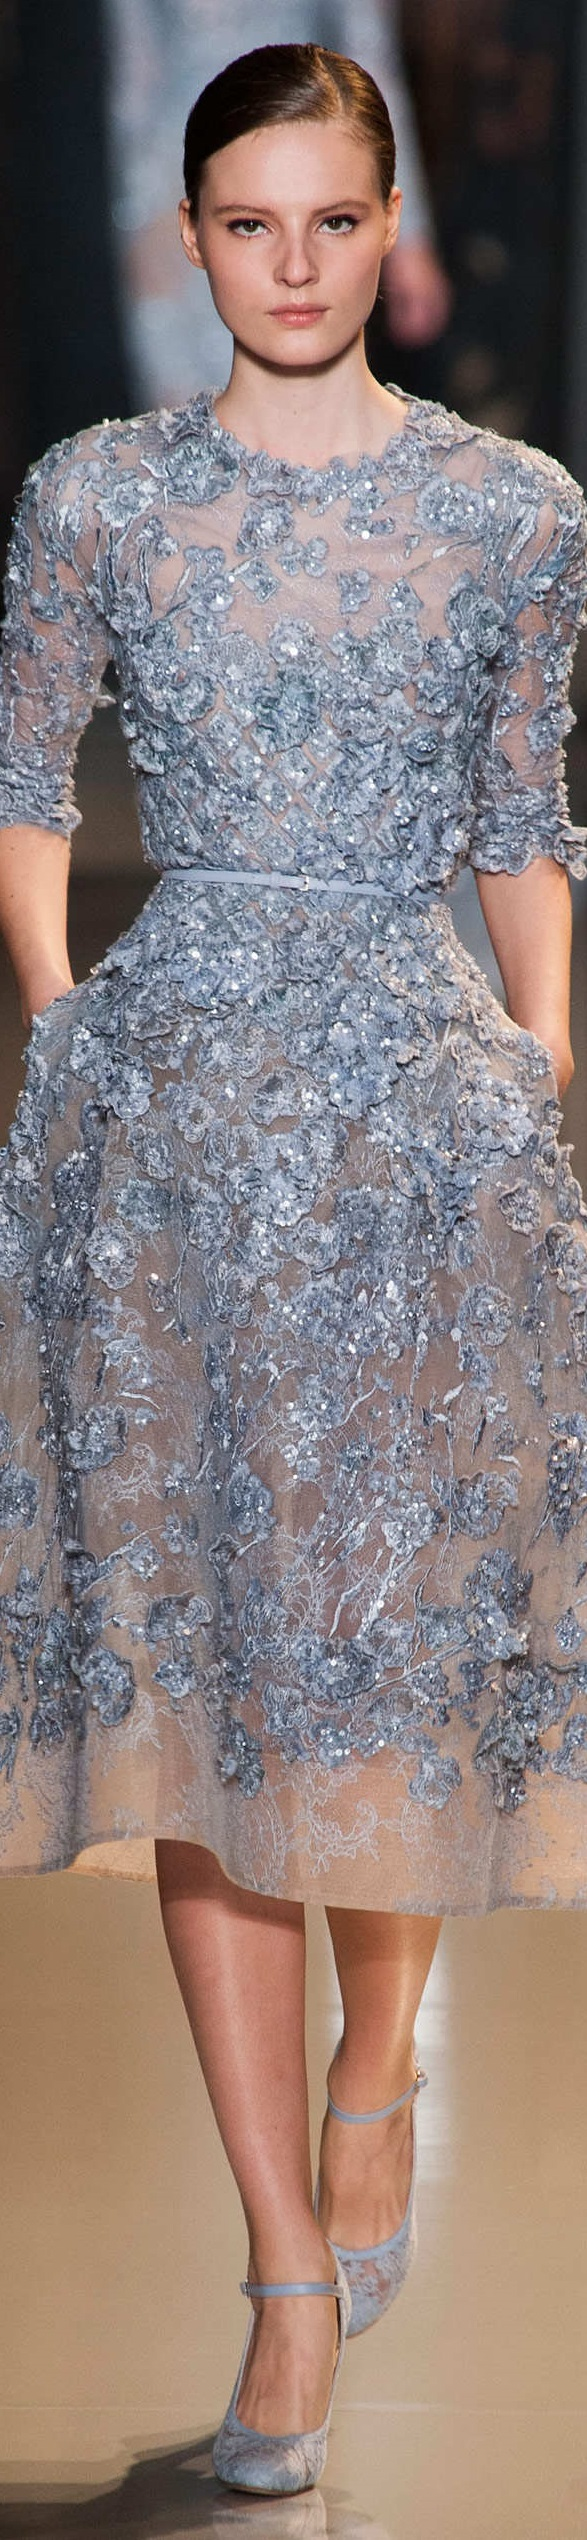 Elie saab all things frilly and sparkly pinterest ellie saab